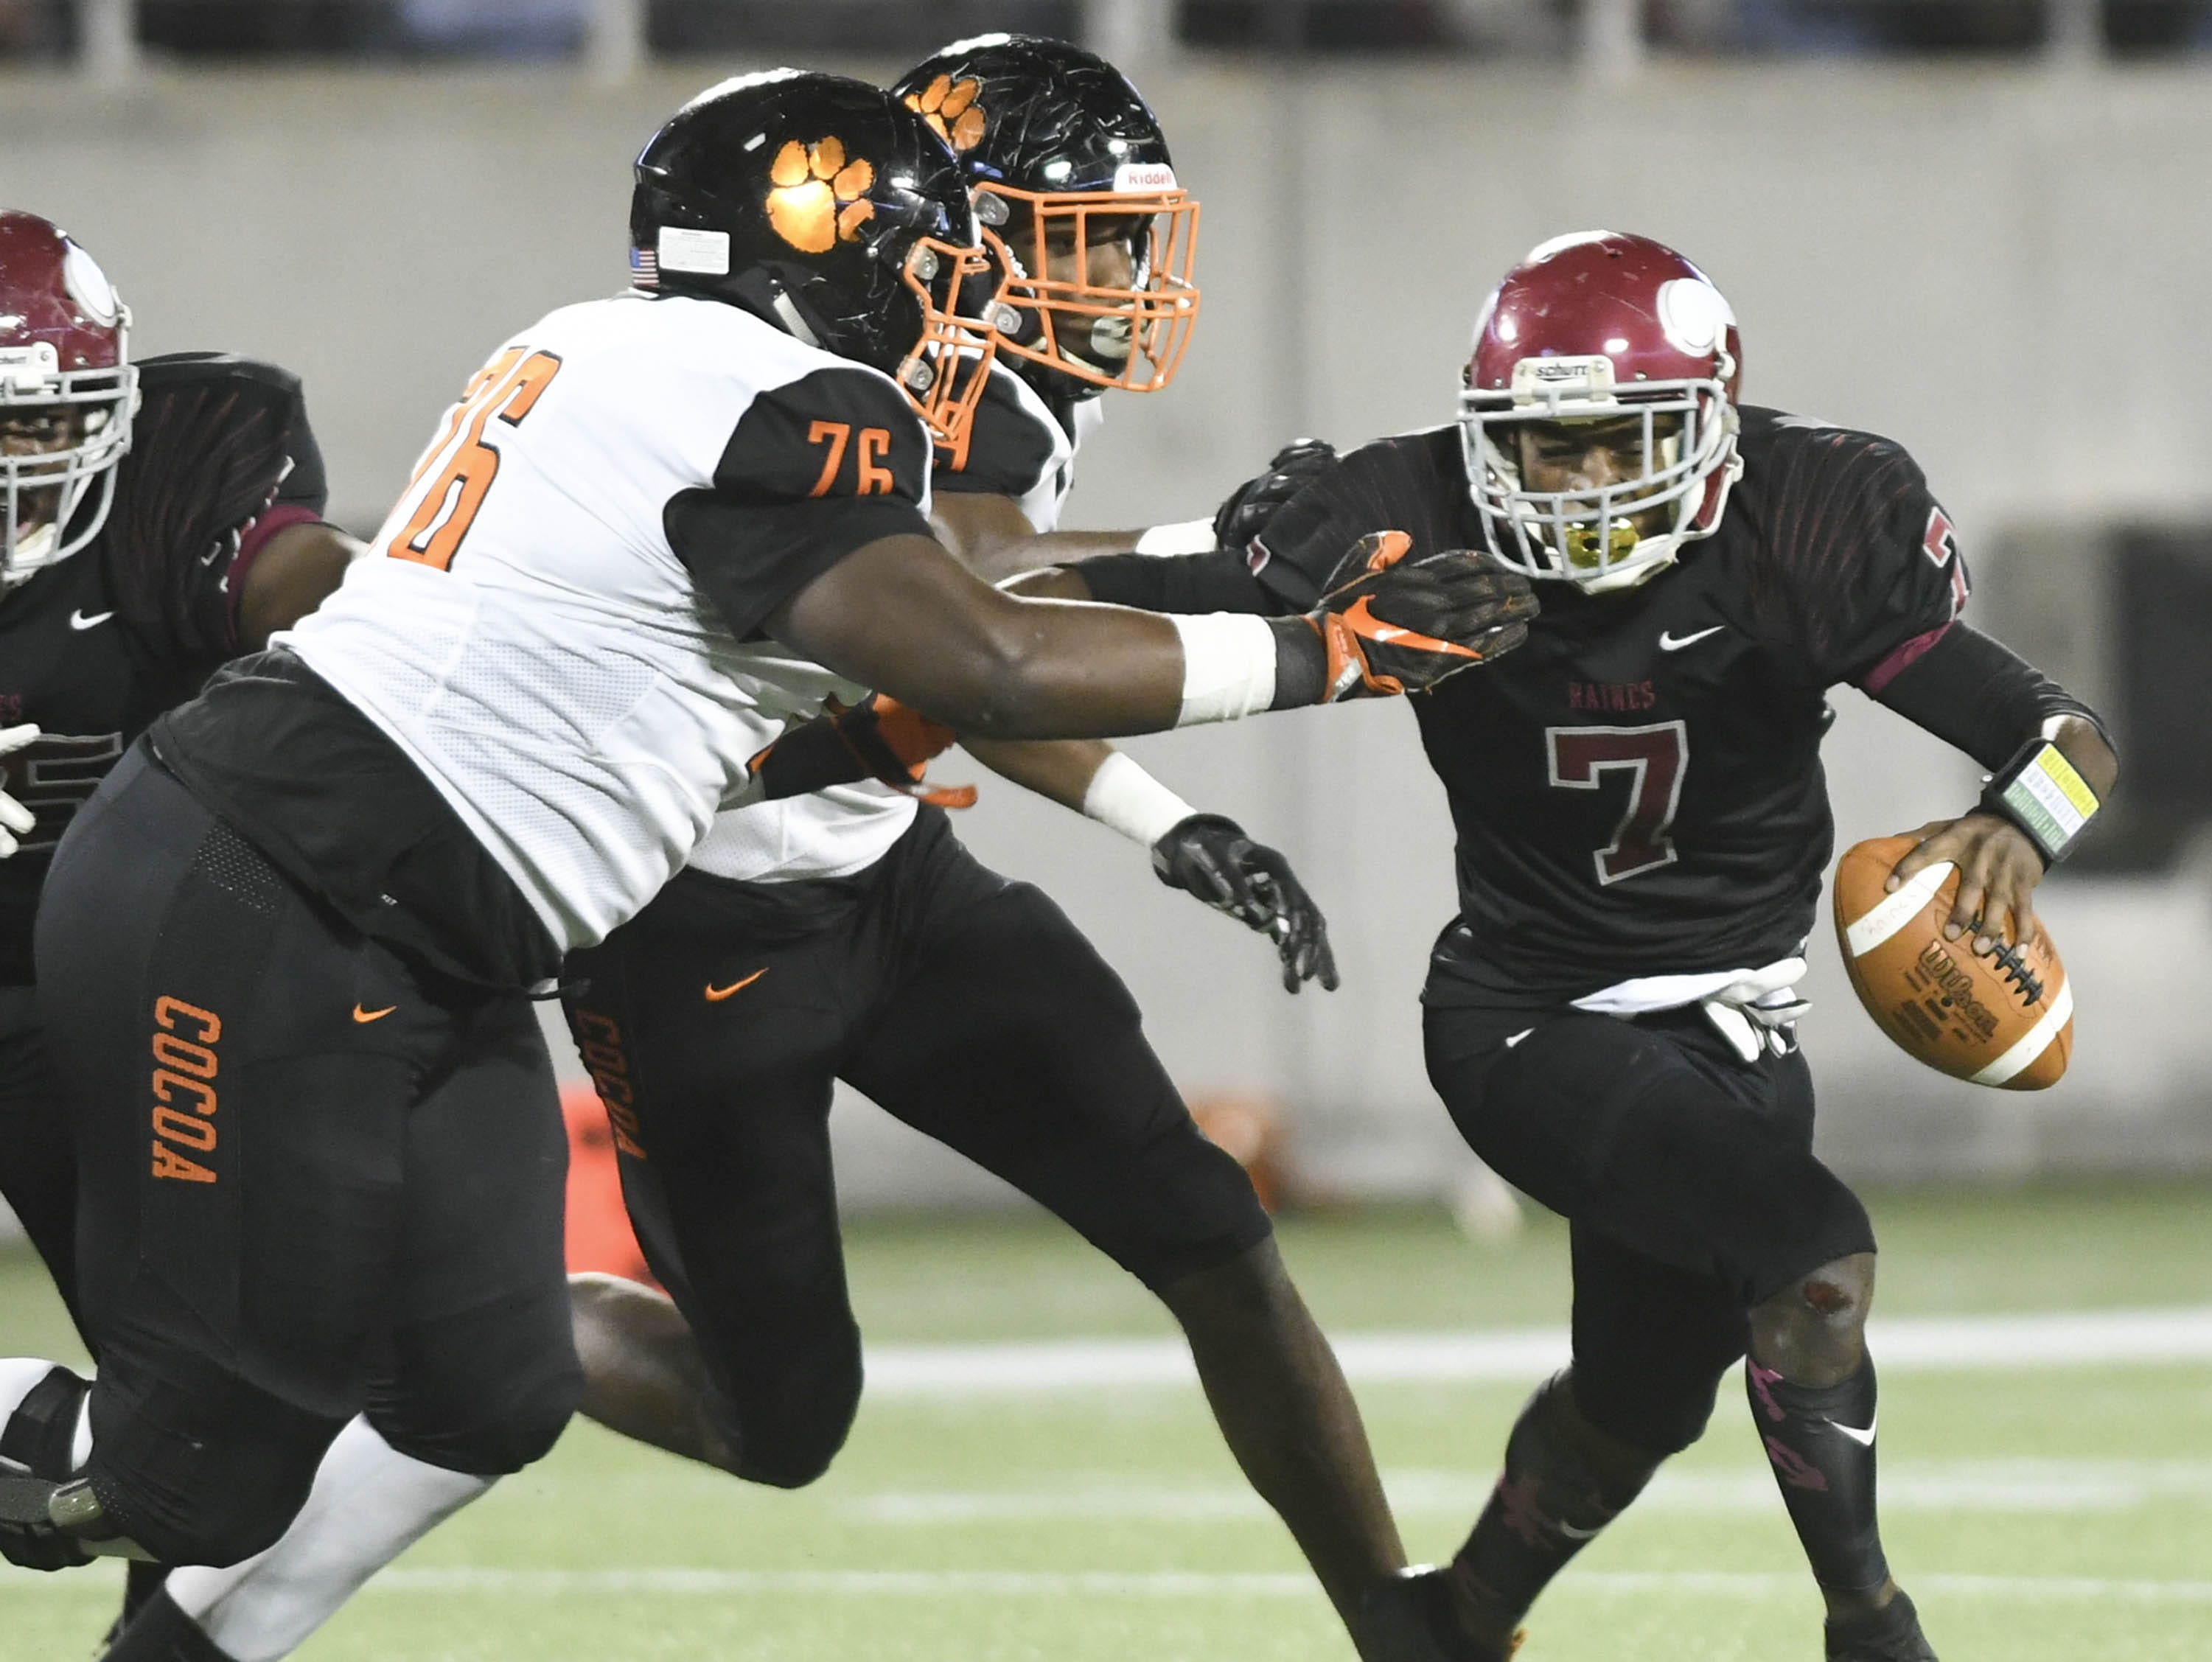 Raines QB jacorey Rivers is chased down by Richie Leonard (76) and Caziah Holmes of Cocoa during Thursday's Class 4A football state championship.